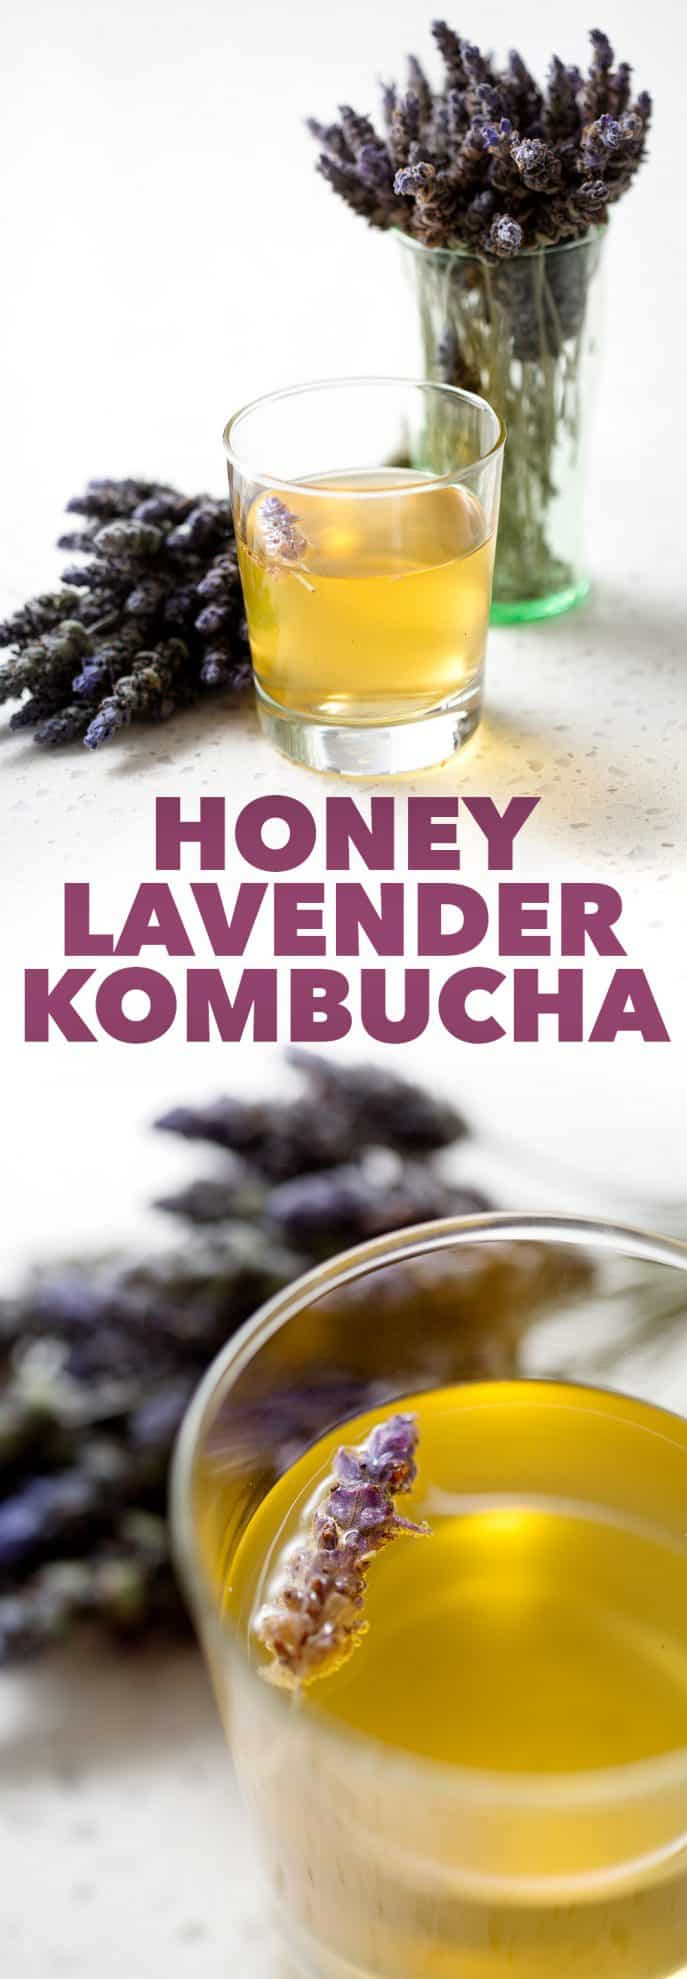 Honey Lavender Kombucha in glass with bunches of lavender on white background